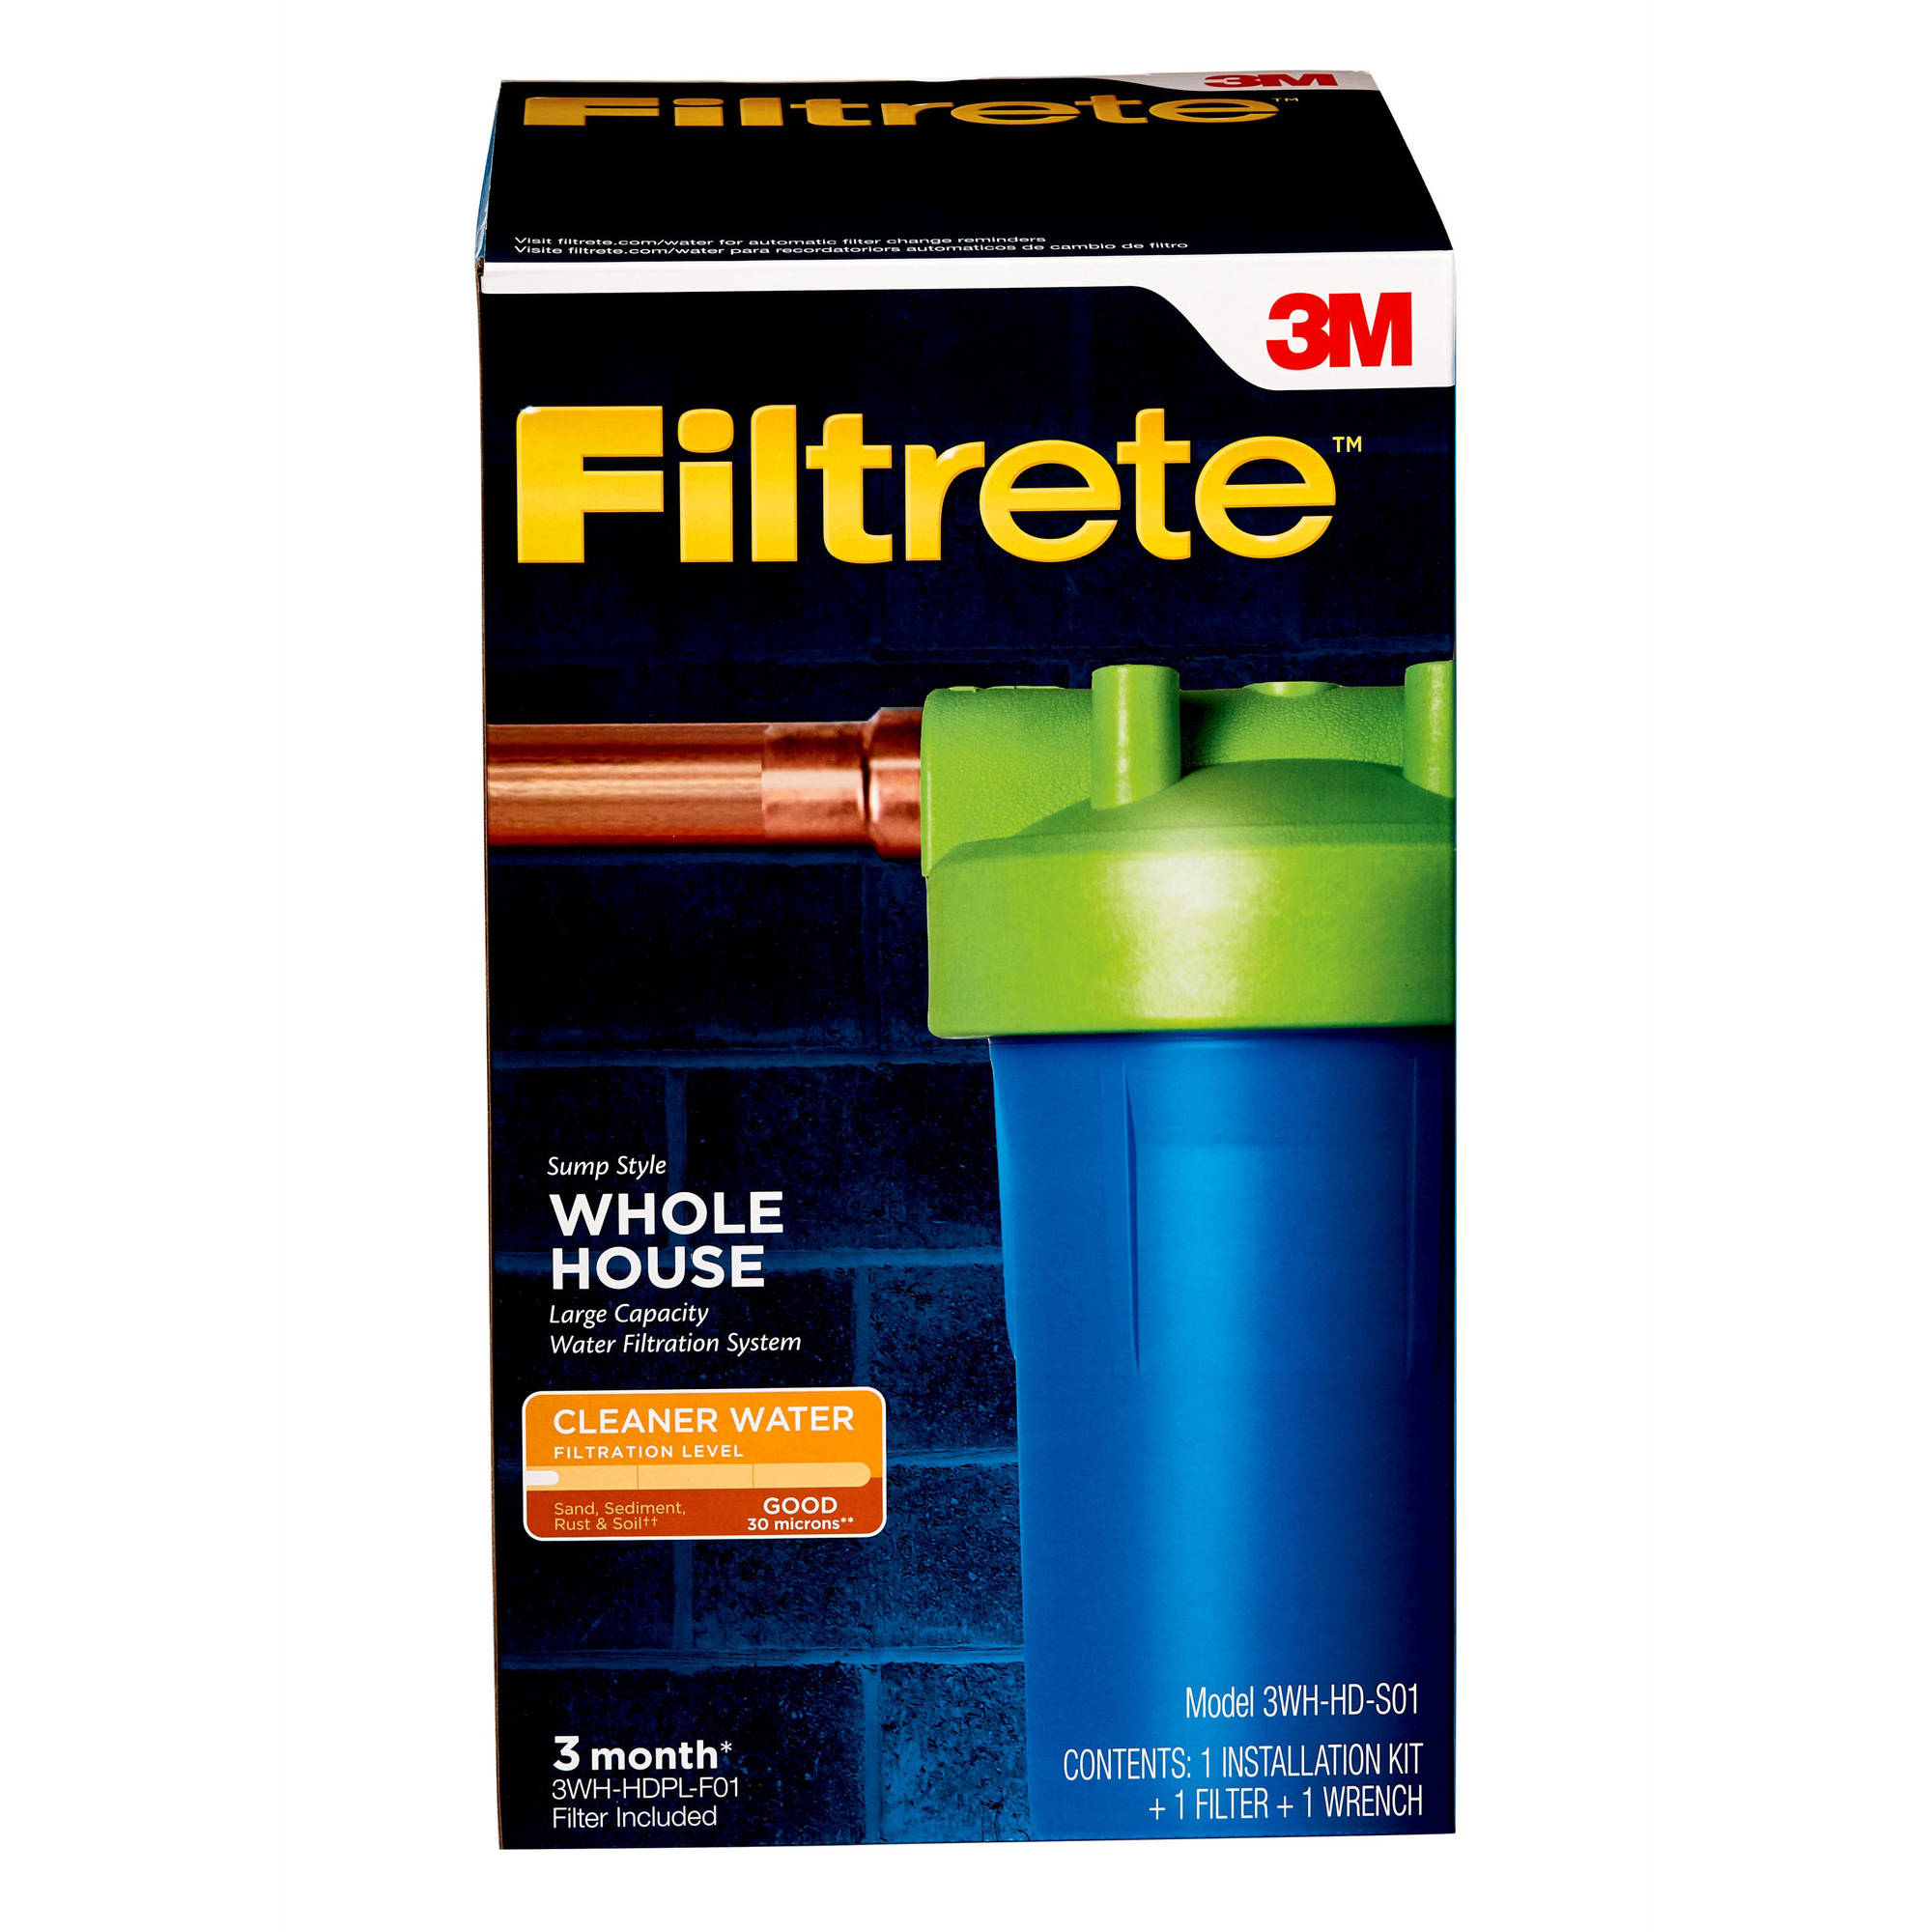 "Filtrete"" Large Capacity Whole House System, Sump Style (sediment)"